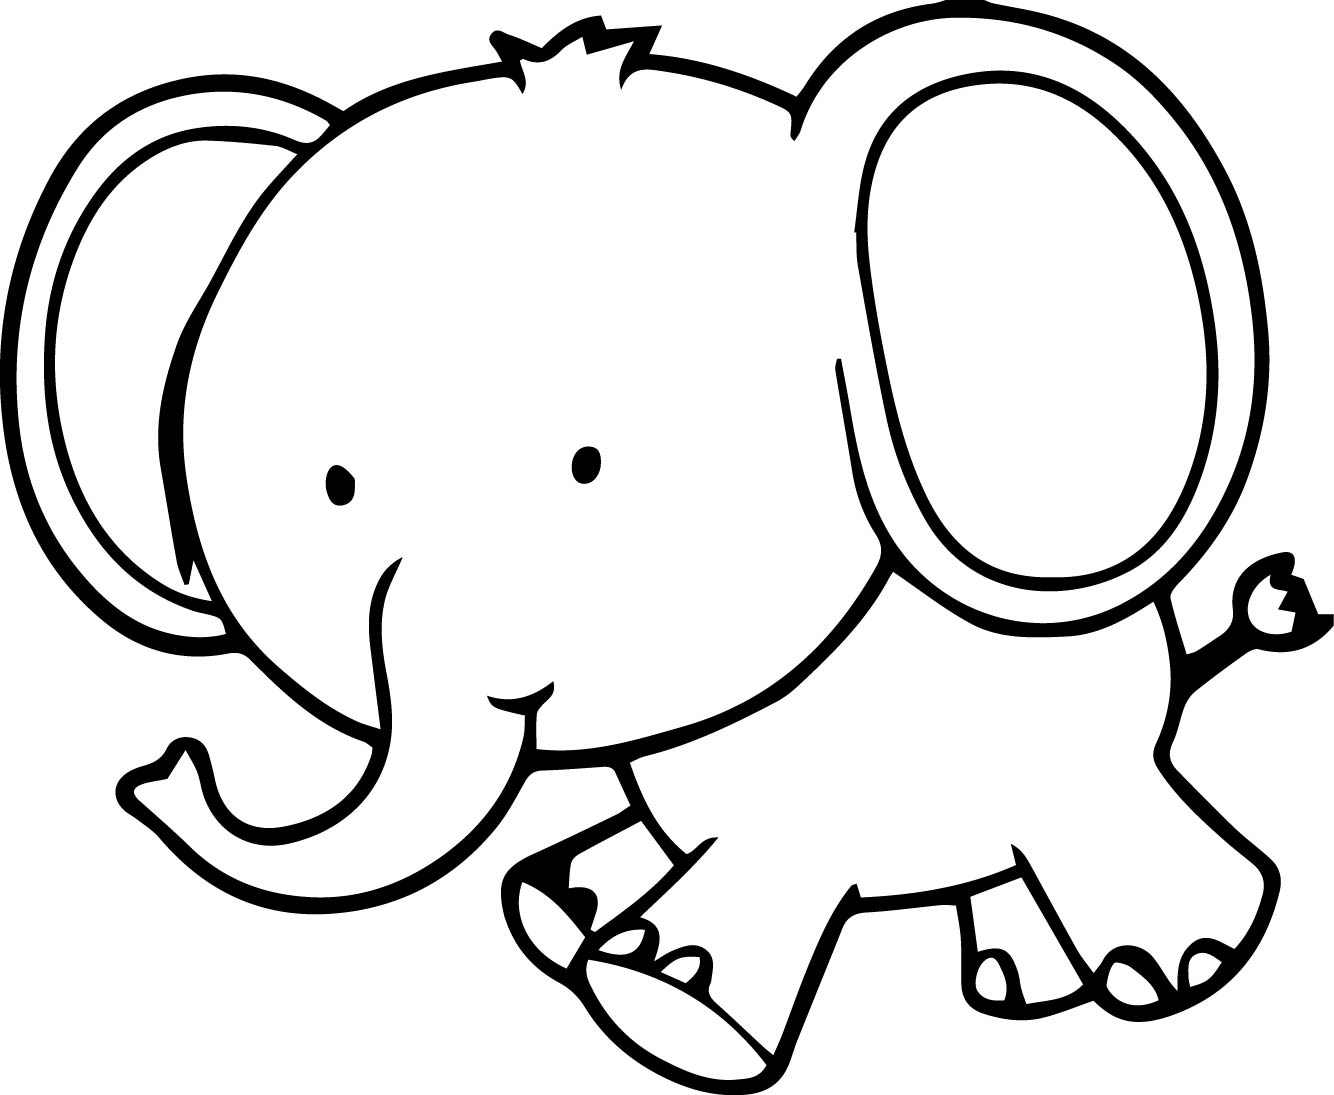 1334x1095 Elegant Elephant Coloring Page With Additional Free Animals